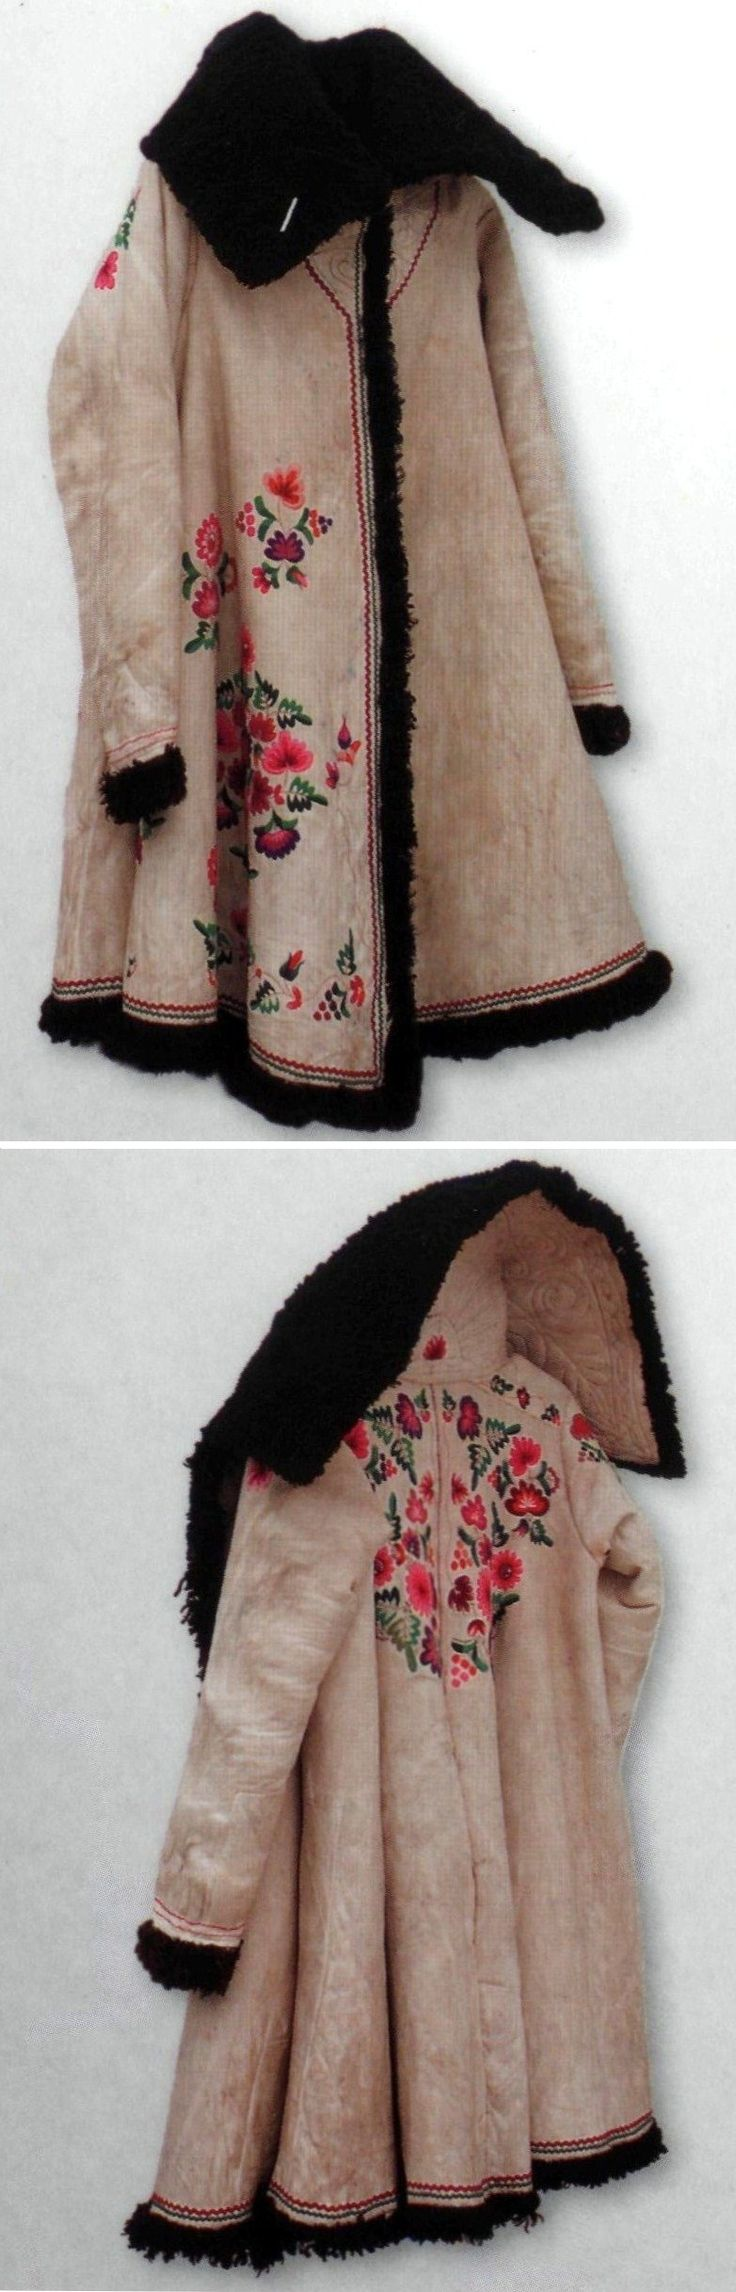 Winter coat of a Russian peasant woman. Fur sheepskin; embroidery. 19th century. #Russia #folk #national #costume